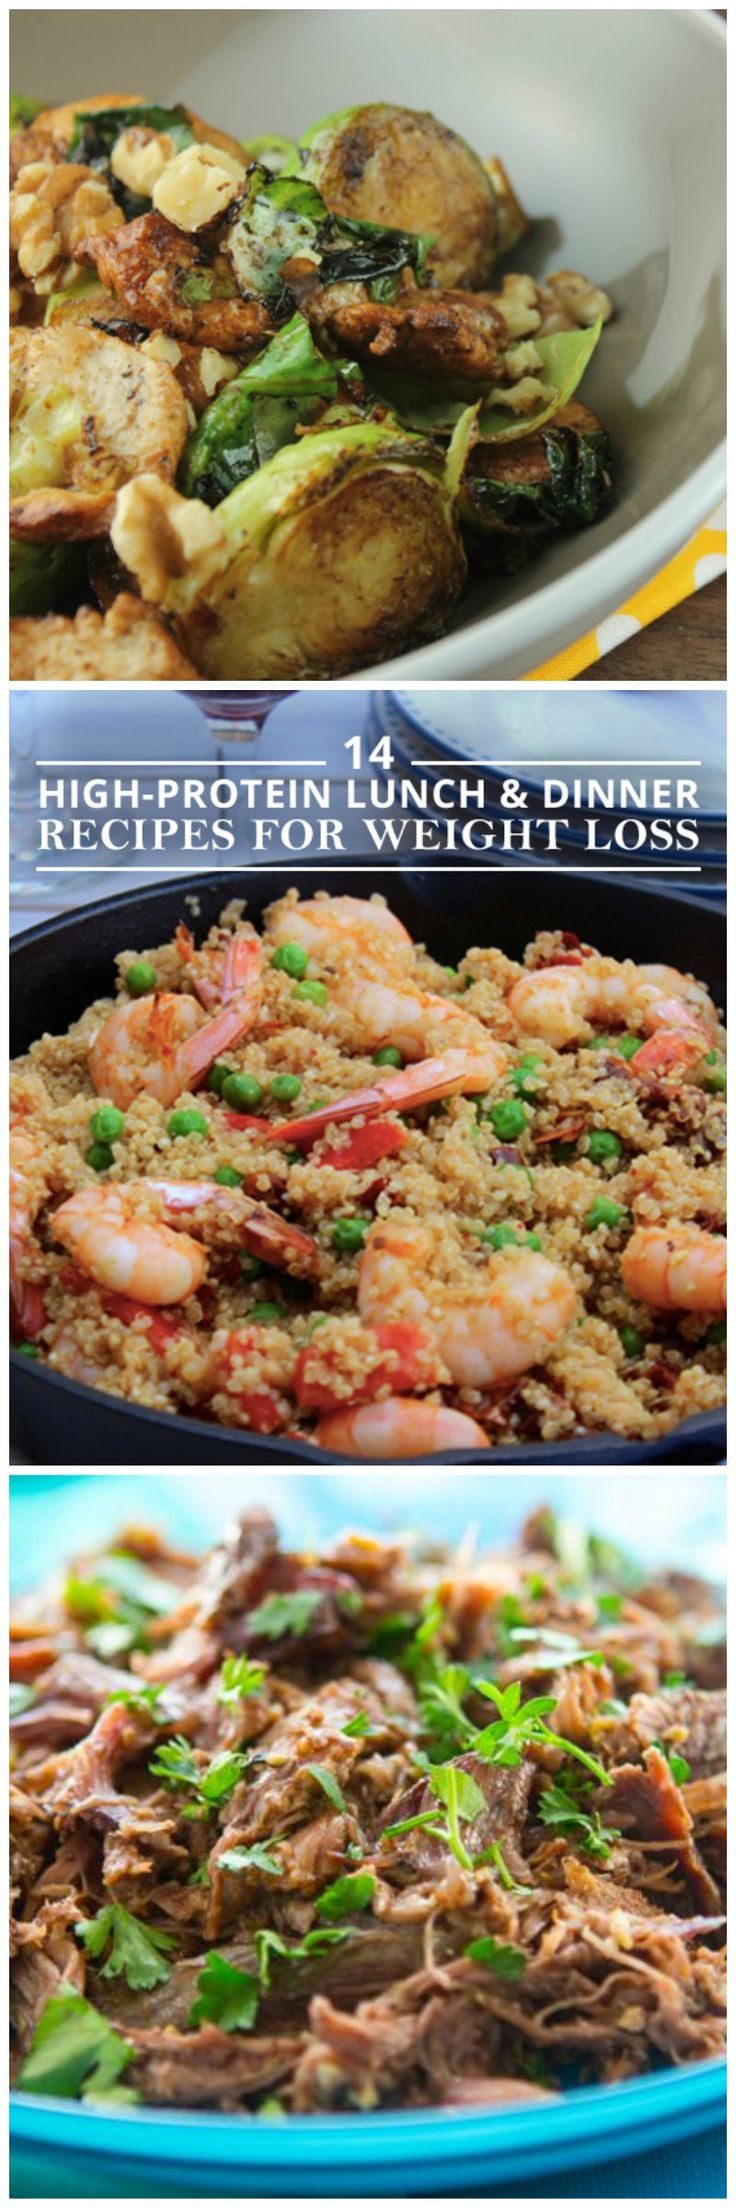 Low Calorie High Protein Recipes Weight Loss  14 High Protein Lunch and Dinner Recipes for Weight Loss